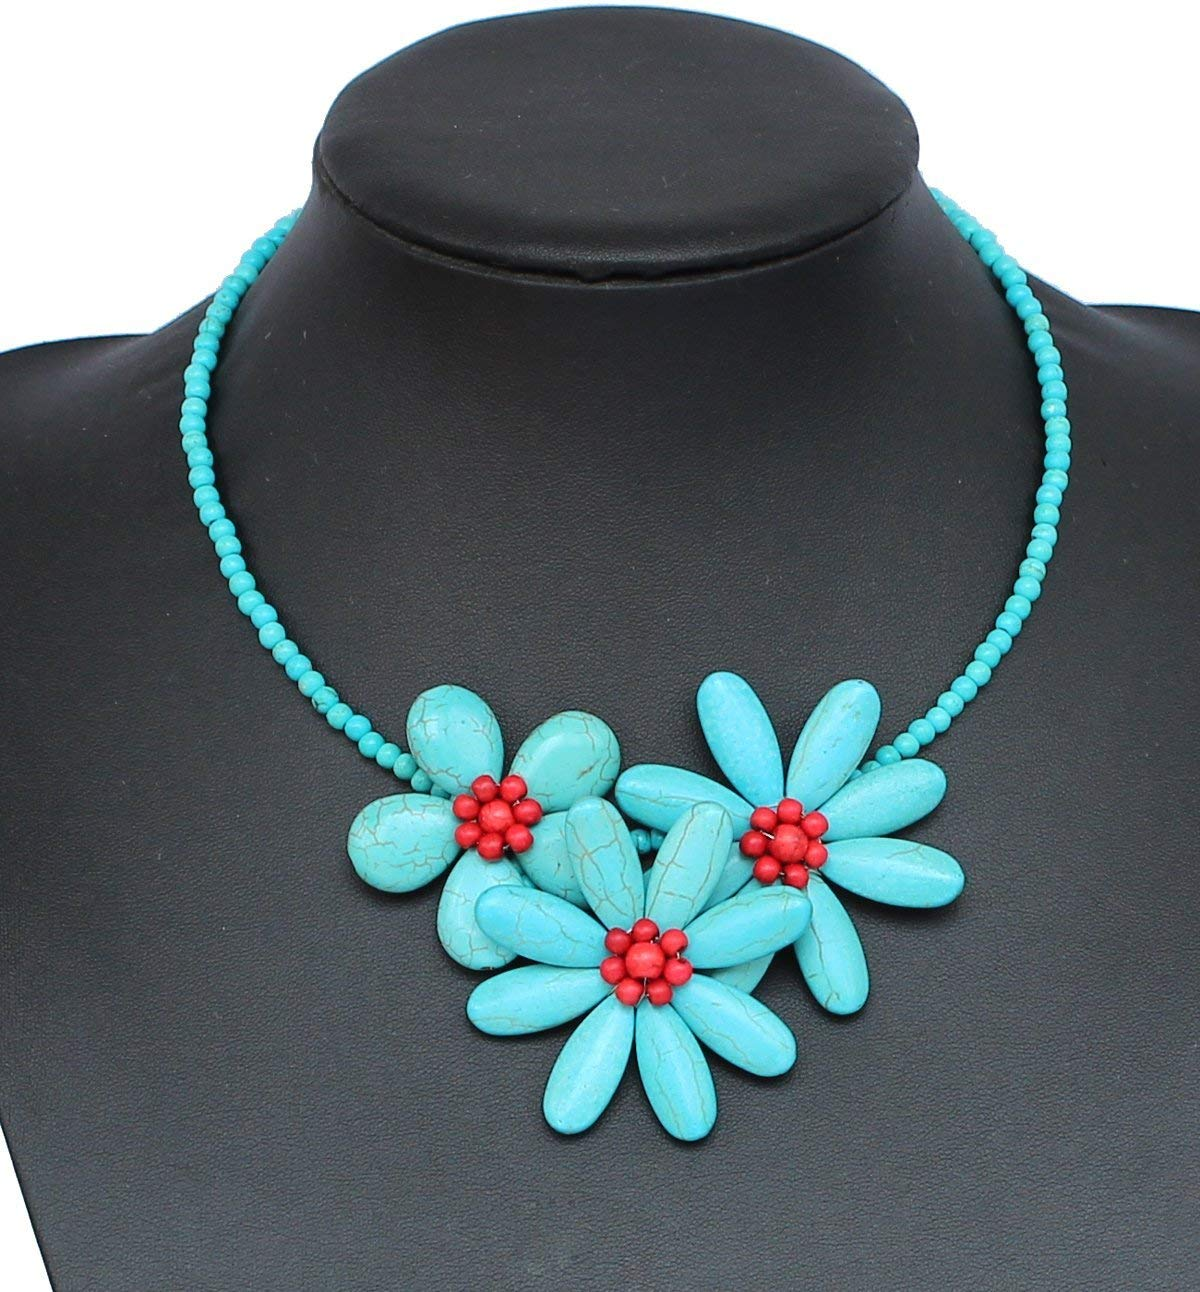 Hand-woven Turquoise beads Flower Necklace With Earrings Set Strand Statement Necklace Turquoise Necklace